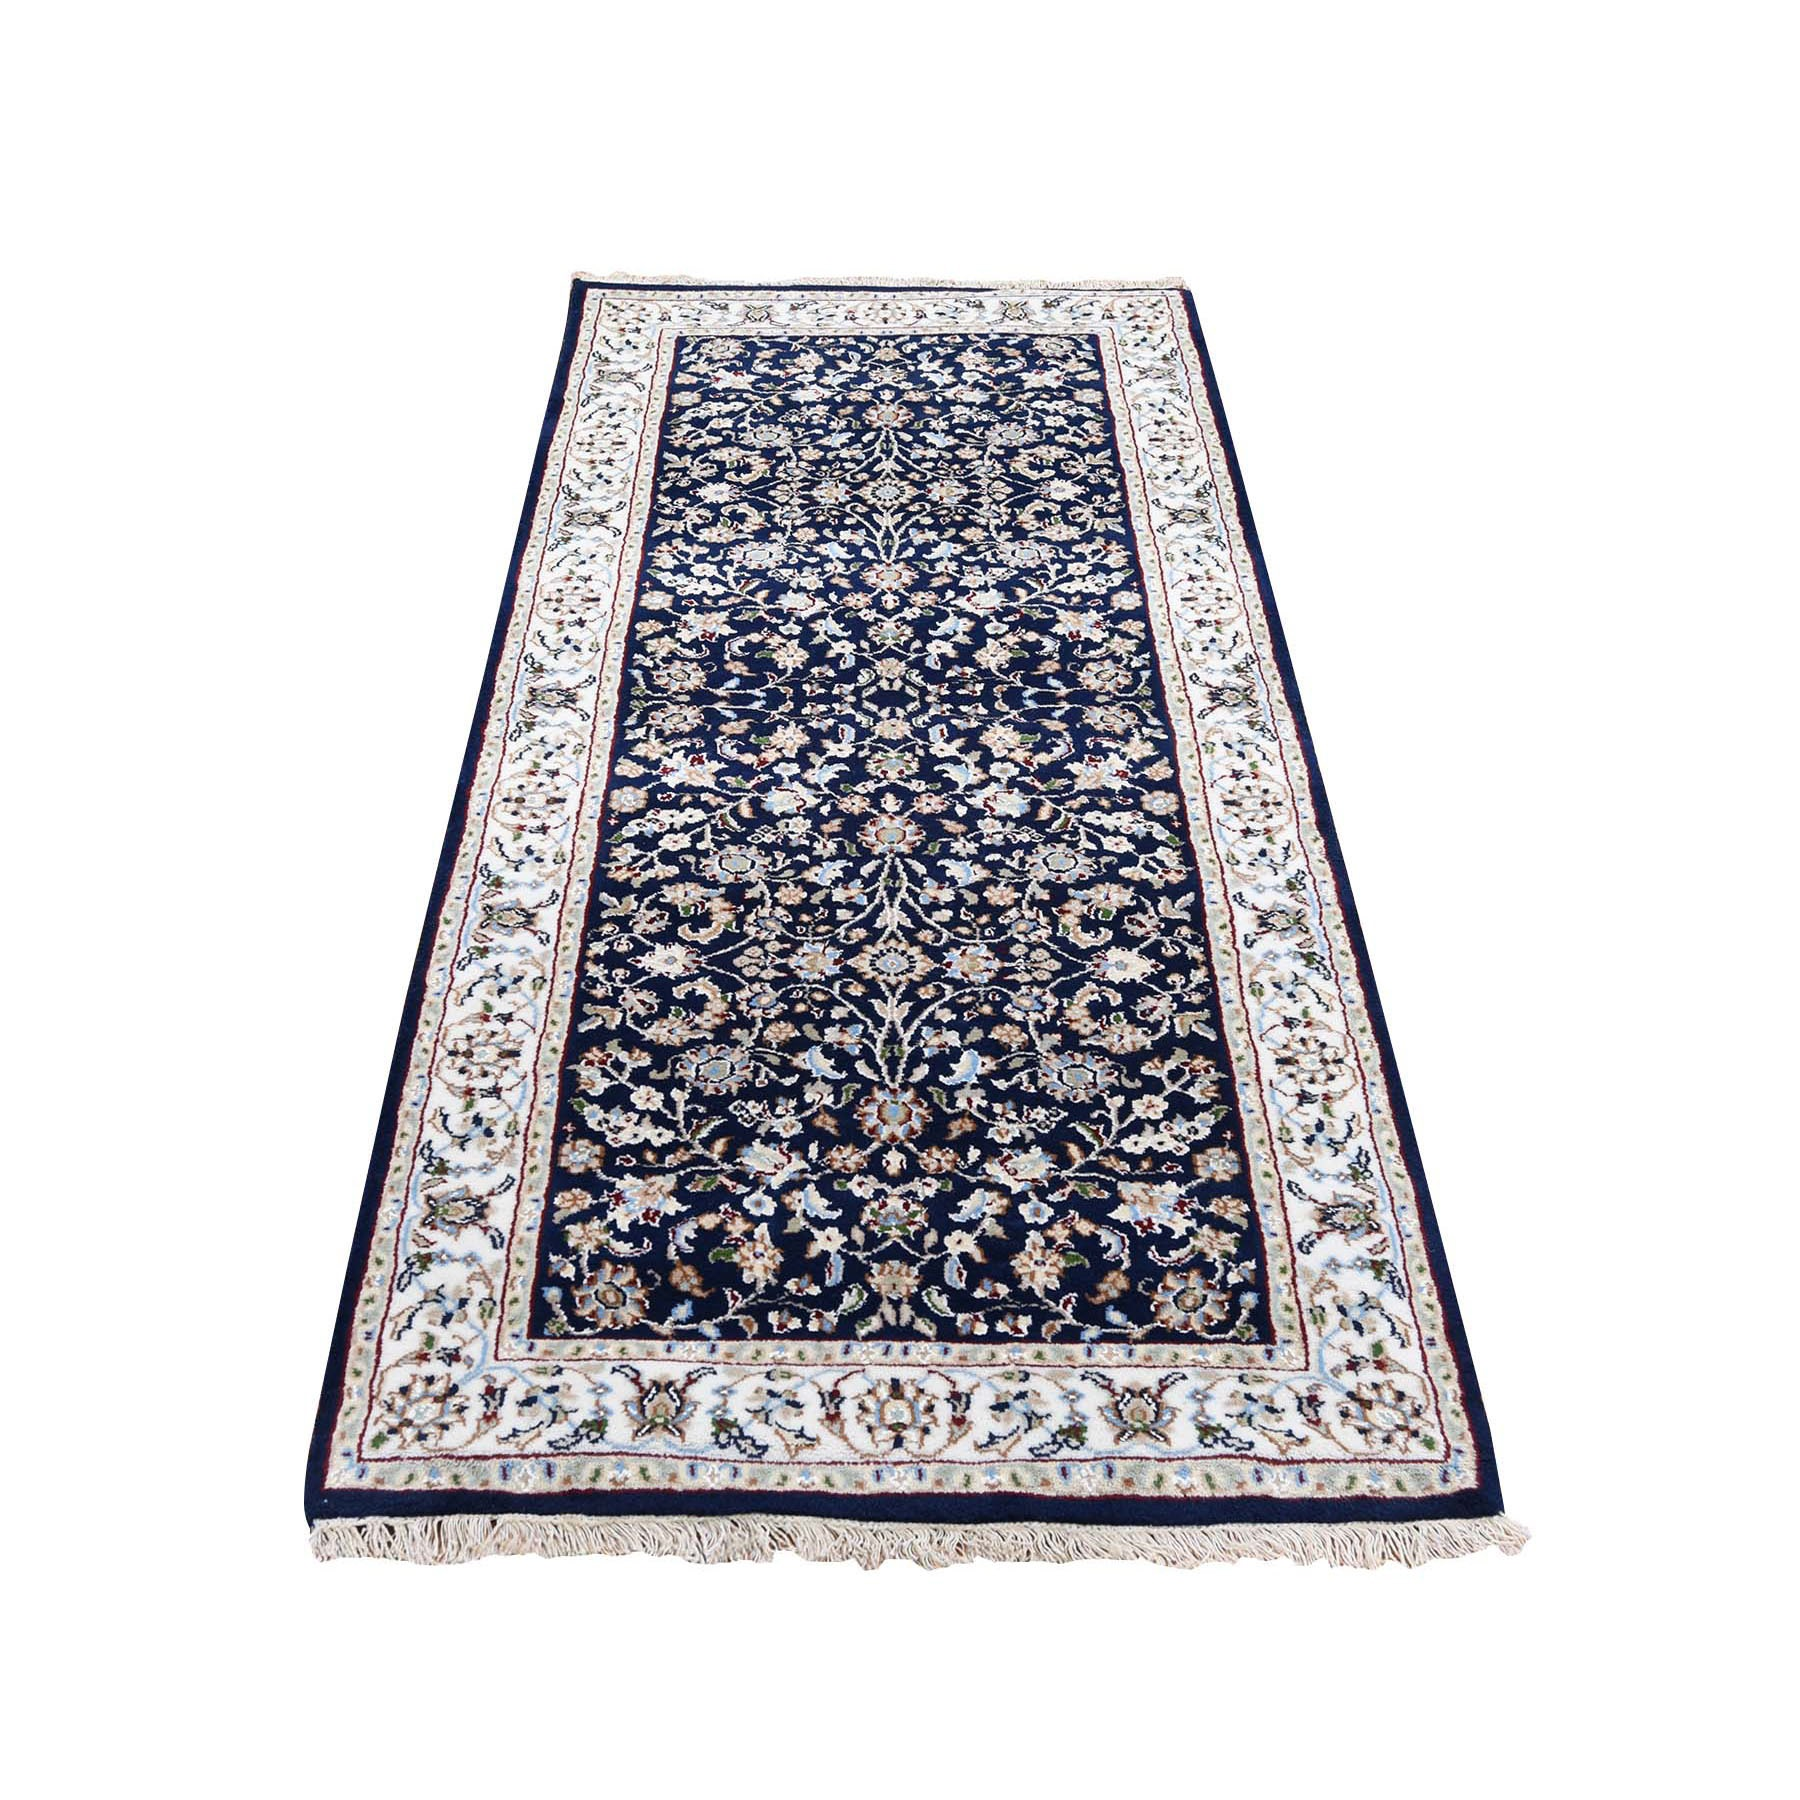 "2'8""x6'1"" Wool And Silk 250 KPSI Navy Blue All Over Design Nain Runner Hand Knotted Oriental Rug"